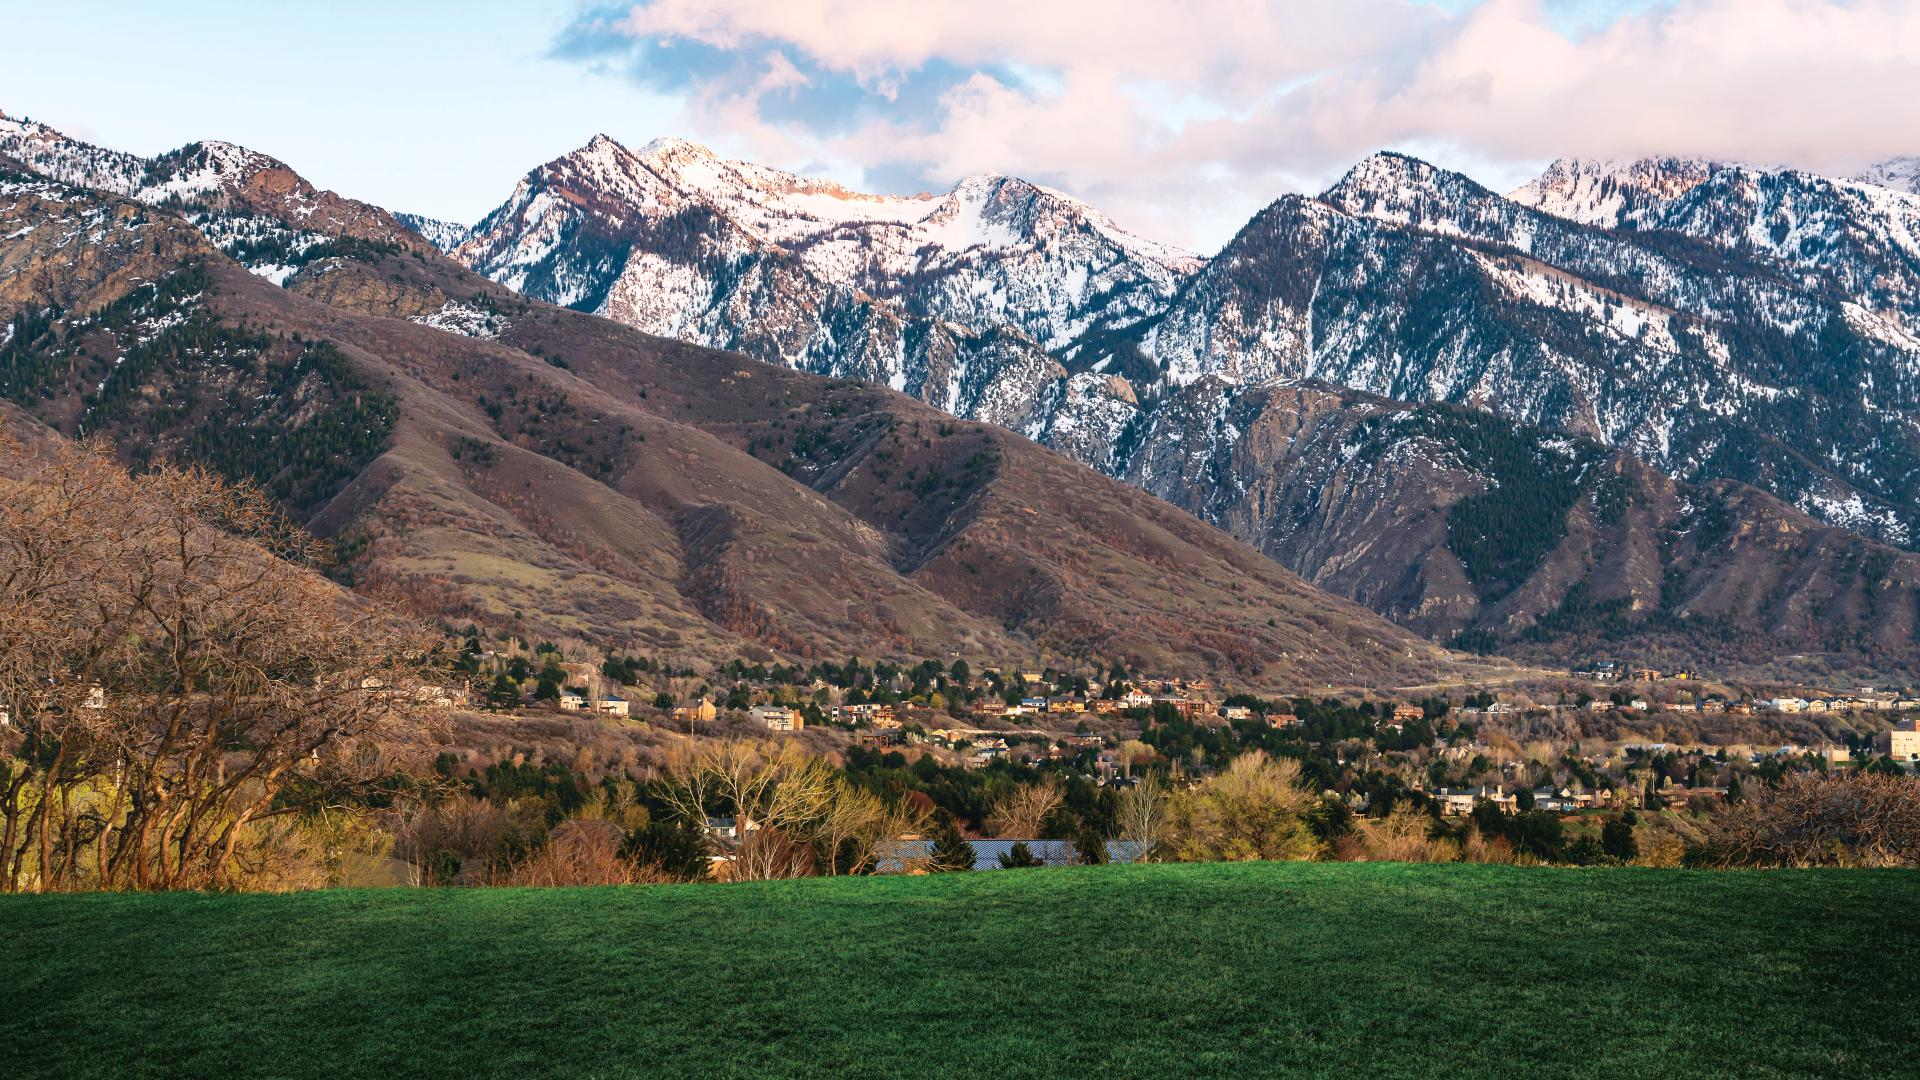 Breathtaking views of the Wasatch Mountain front